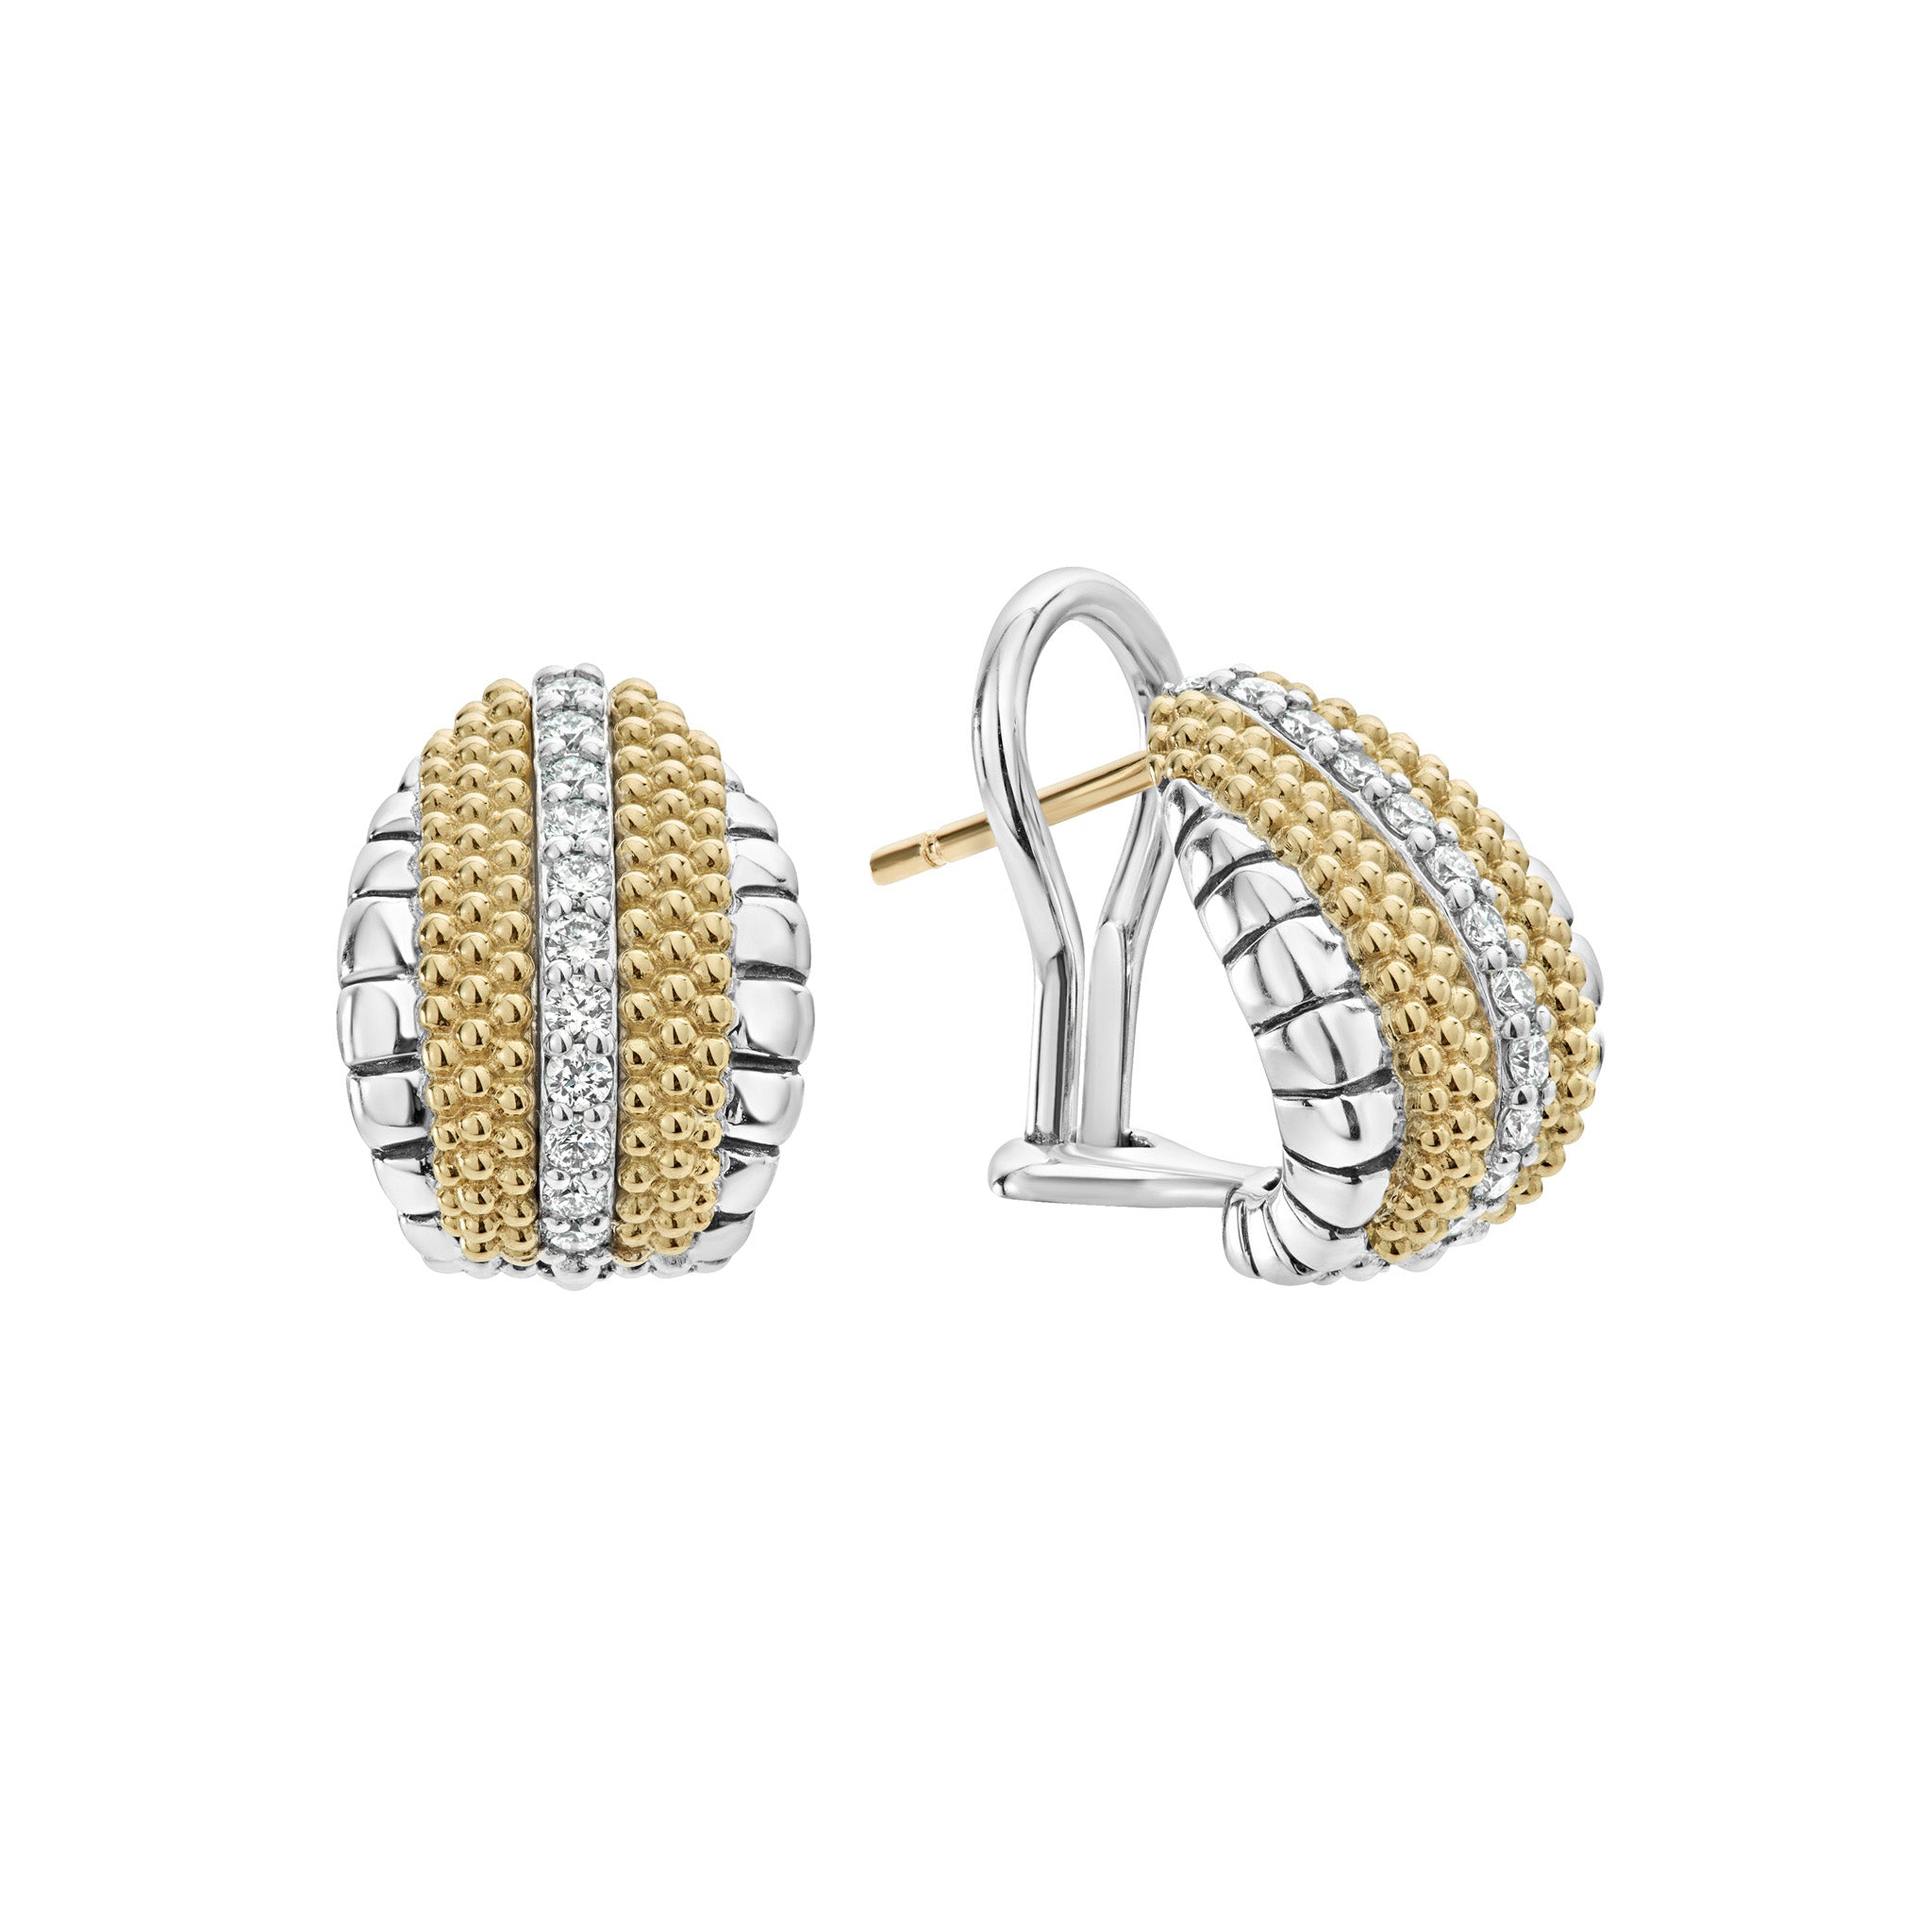 Lagos 'Diamond Lux' Diamond Earrings